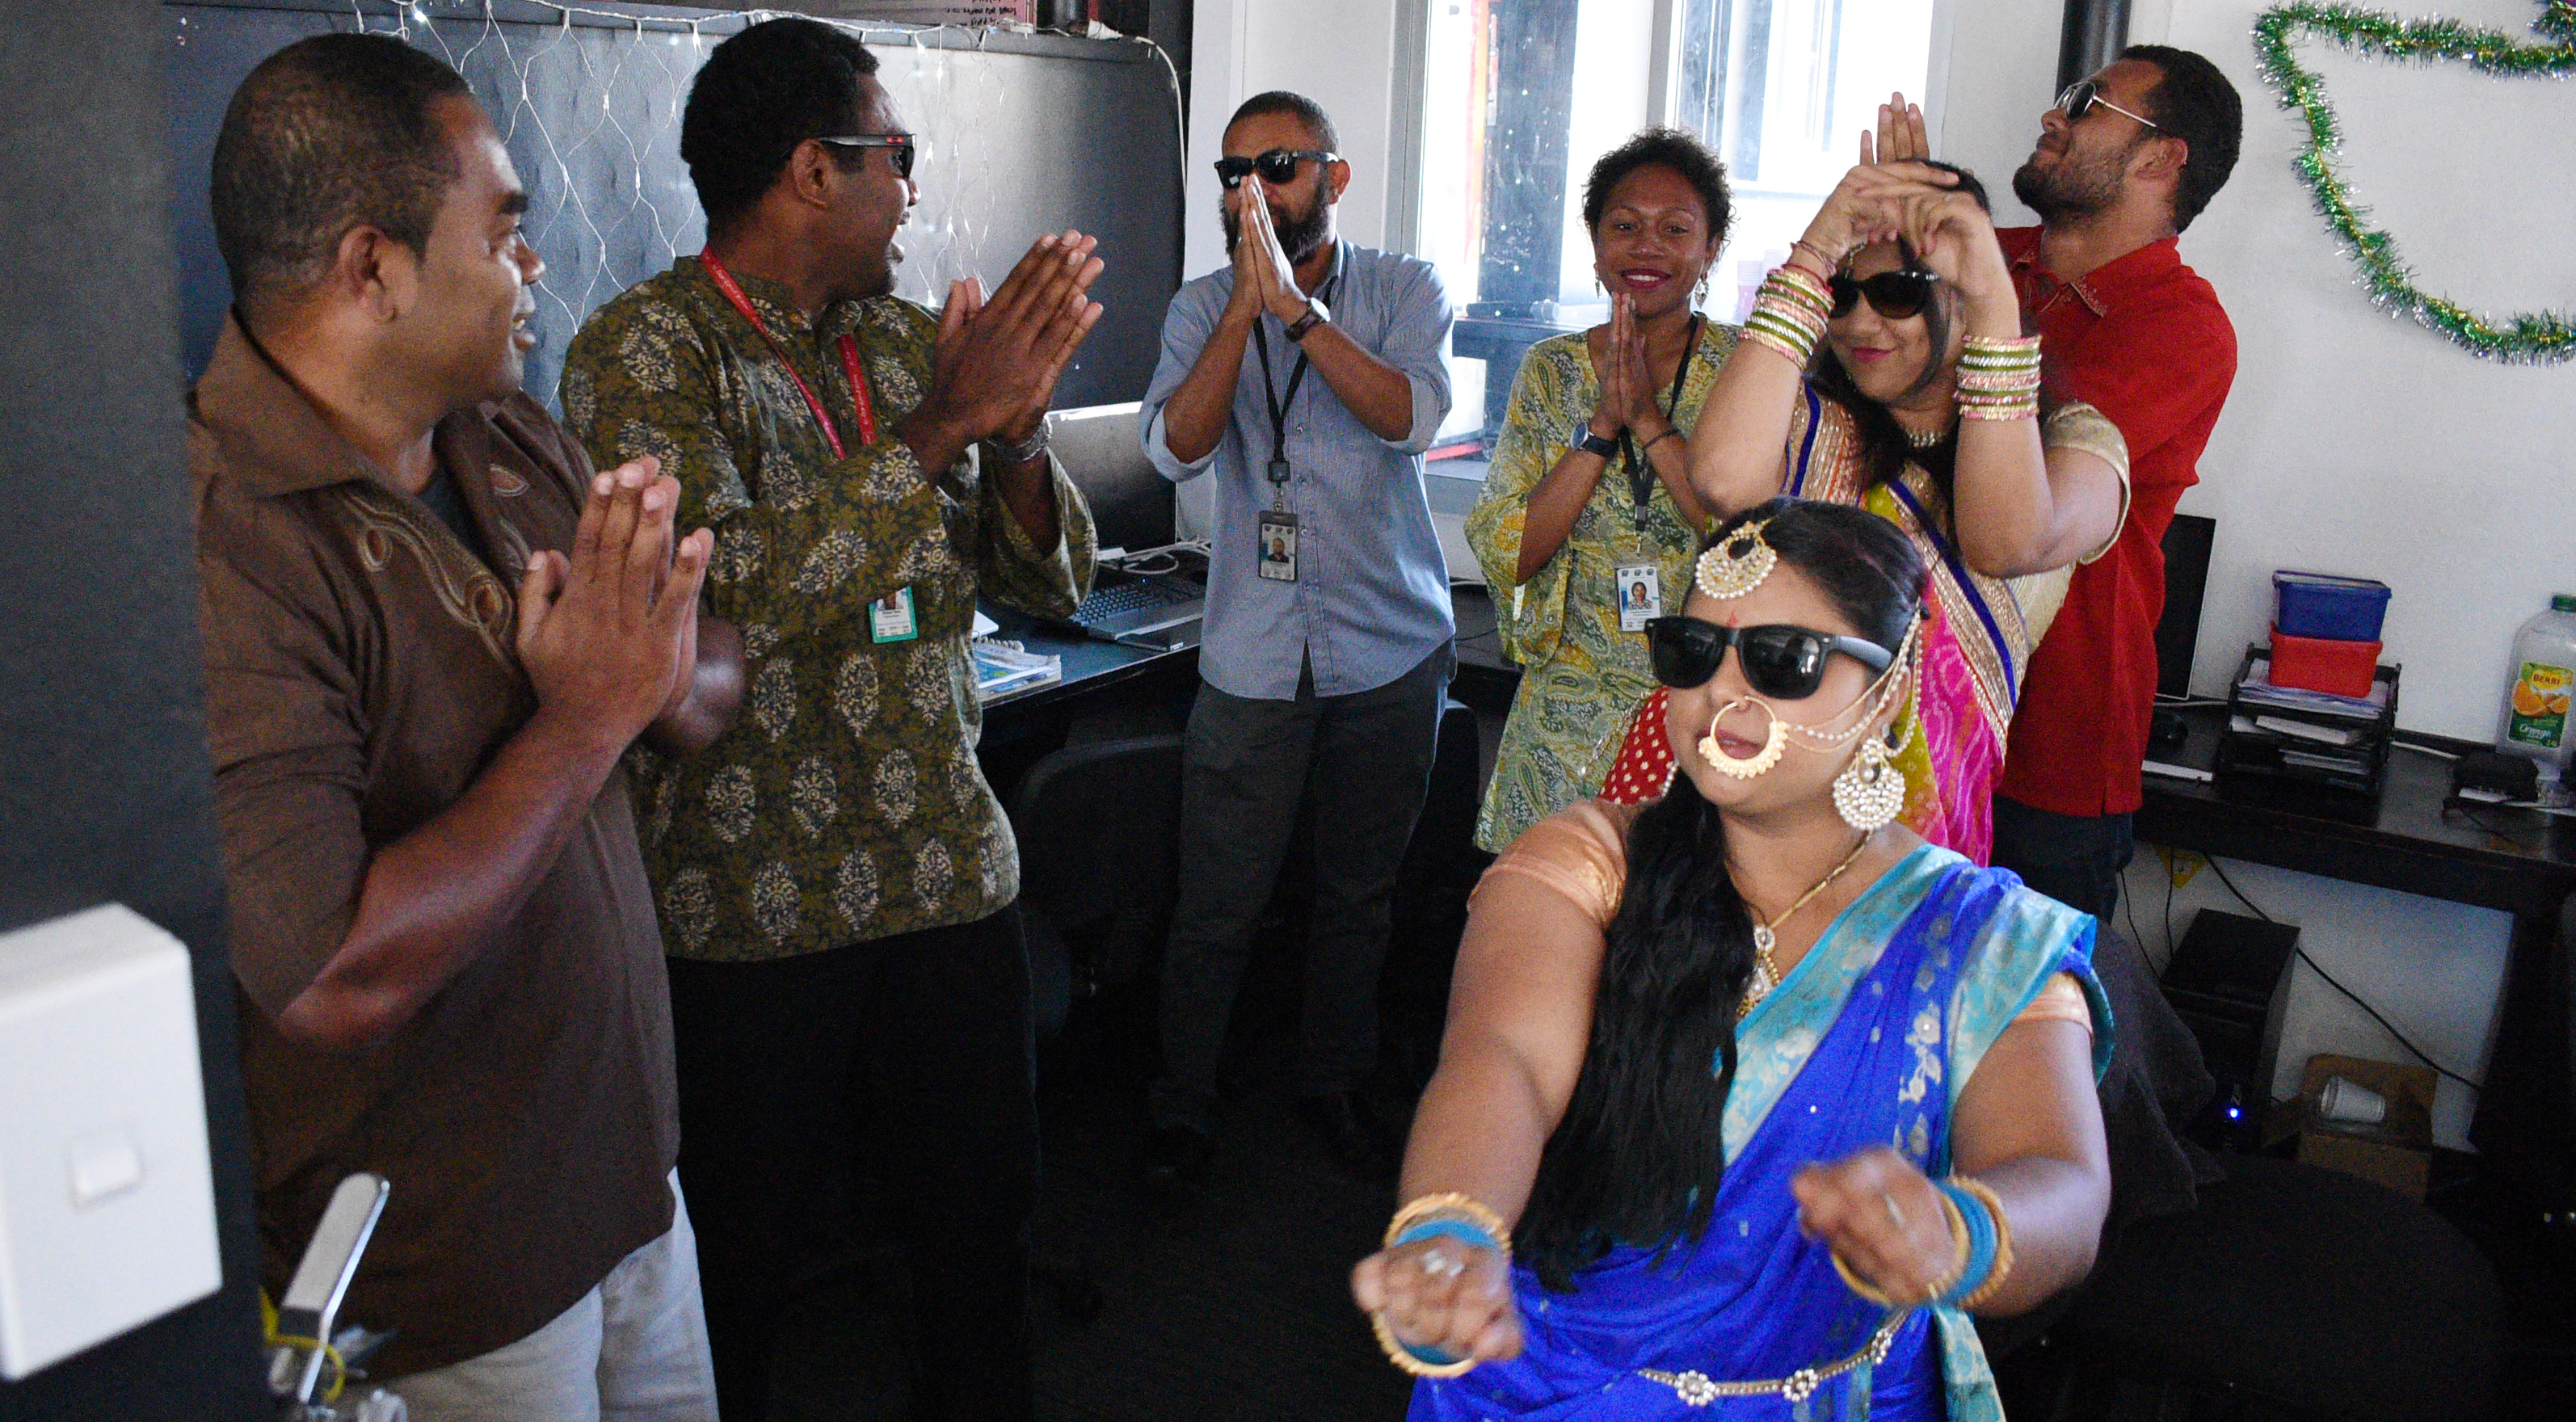 Fiji Broadcasting Corporation staff during their Diwali celebration at their office in Suva on October 18, 2017. Photo: Ronald Kumar.